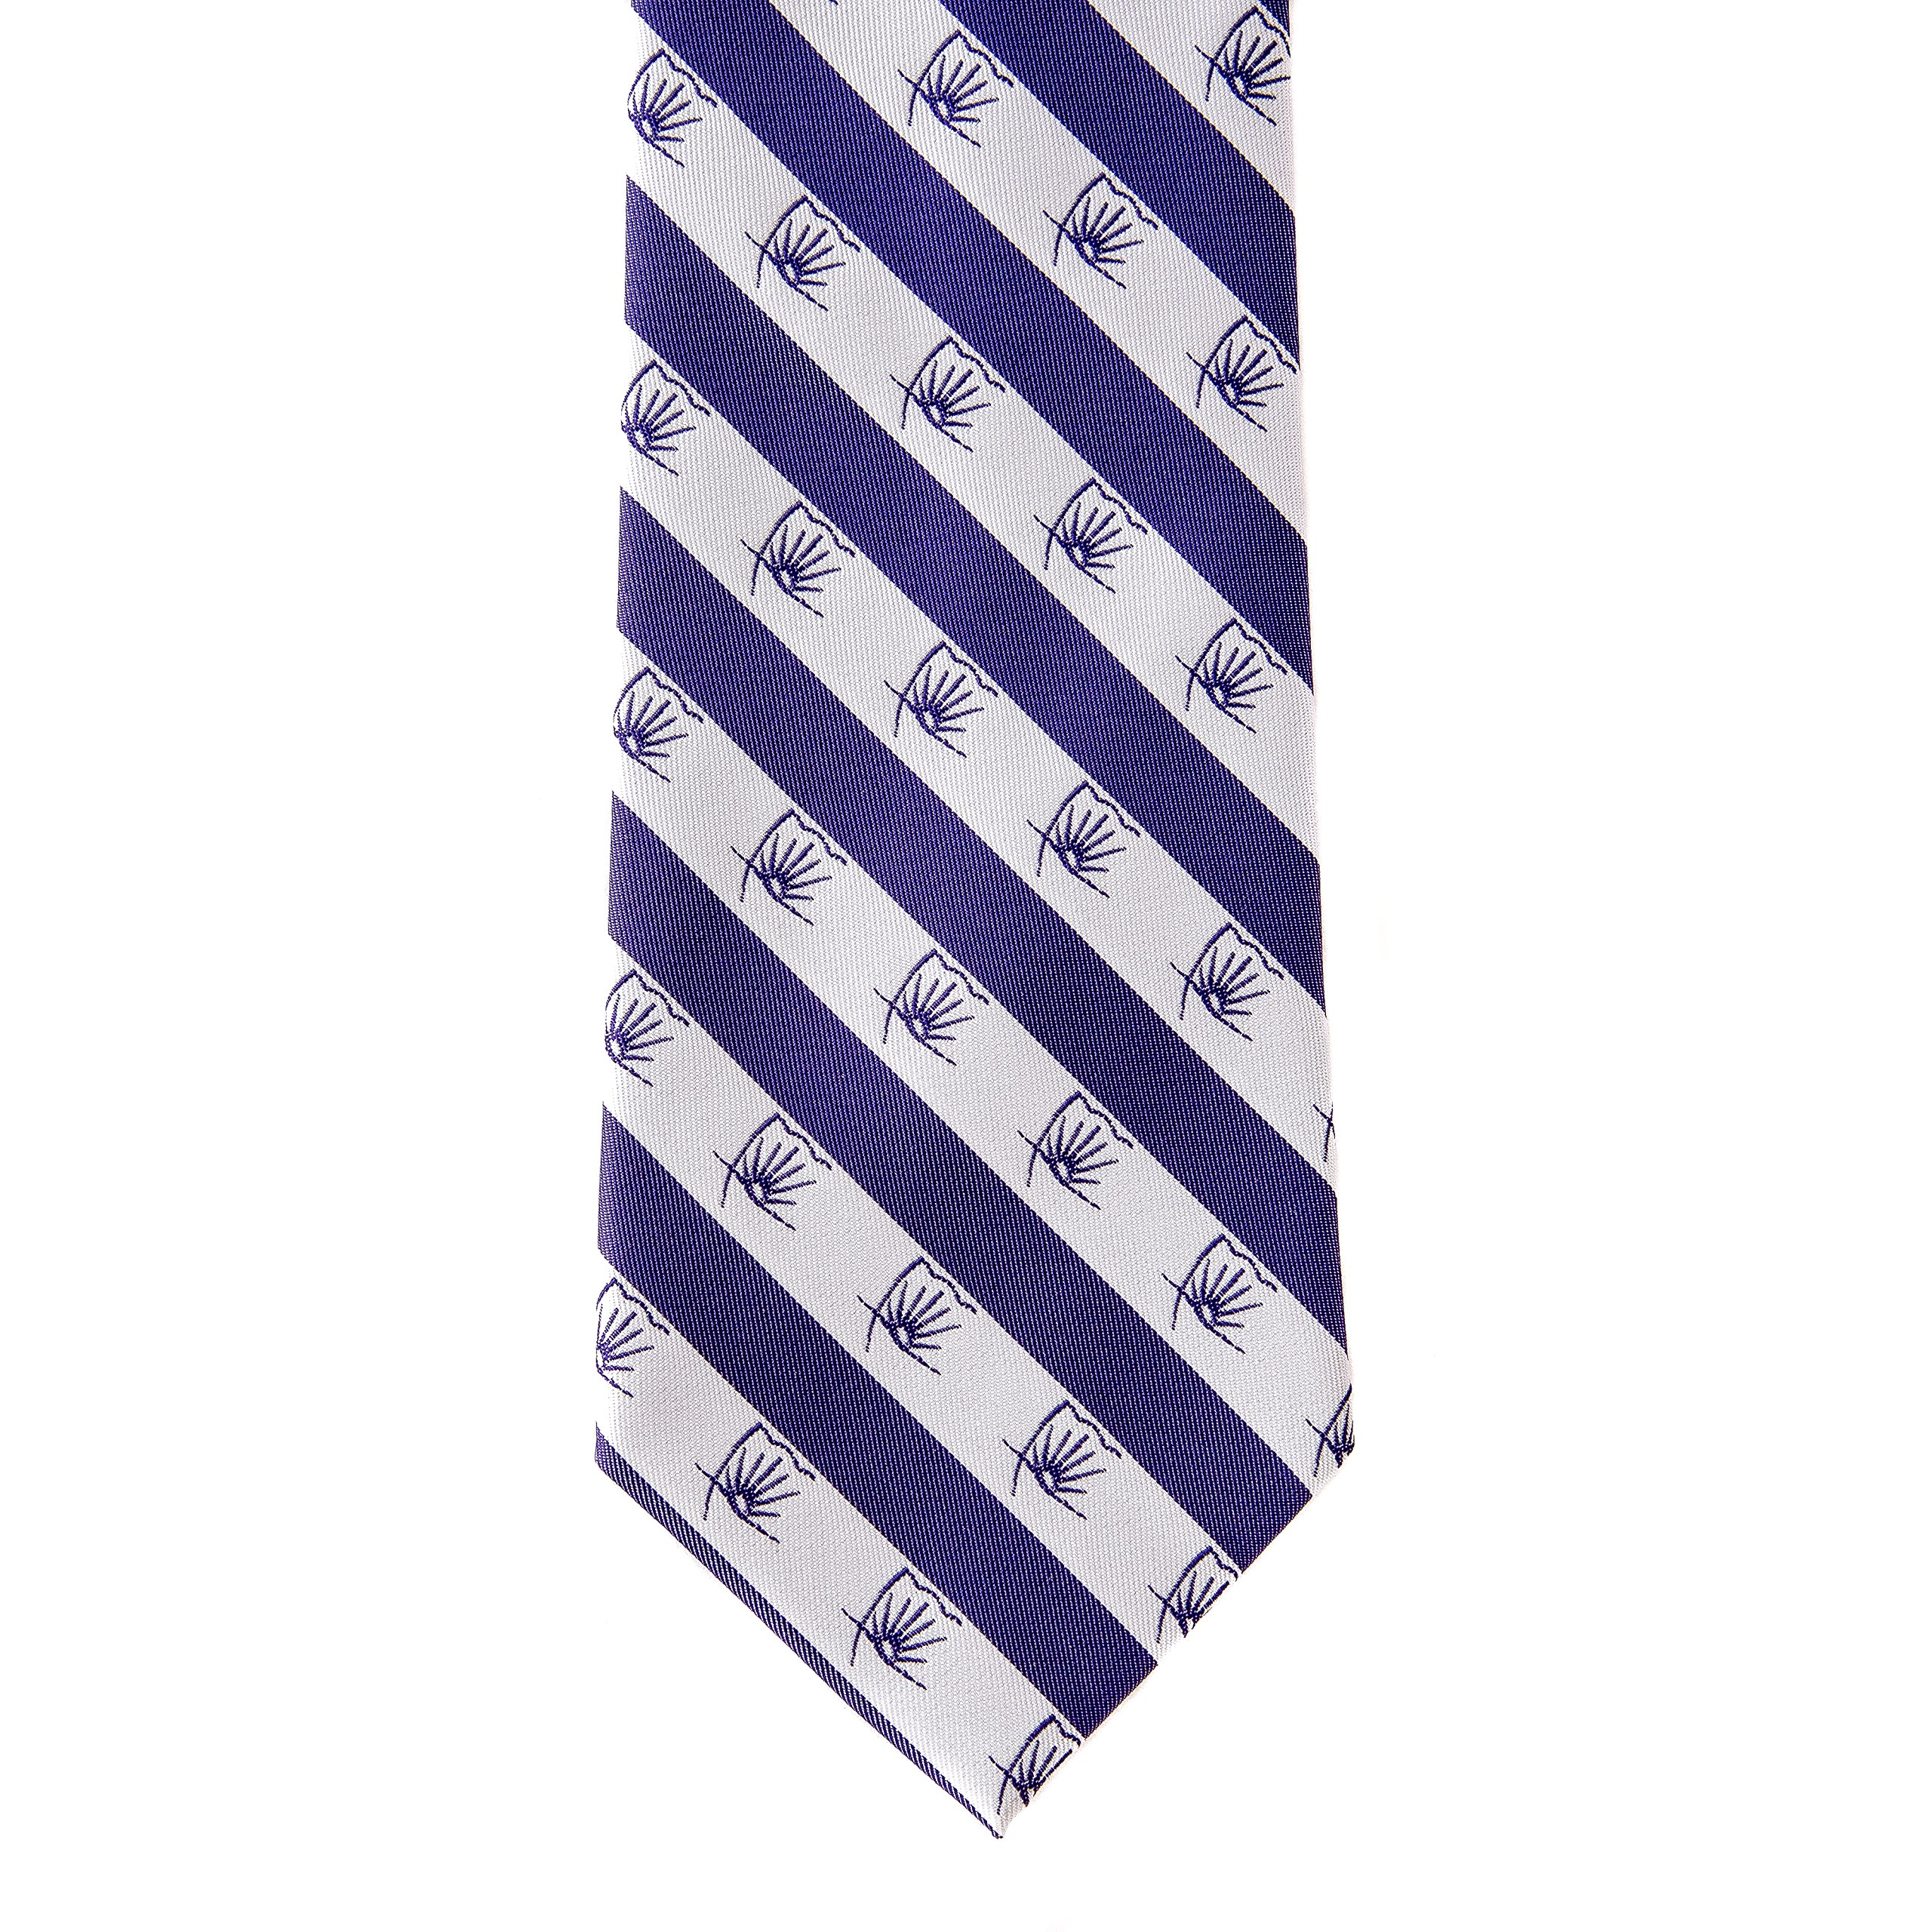 Sigma Alpha Epsilon Fraternity Necktie Tie Greek Formal Occasion Standard Length Width Hanky Pocket Square SAE (Flag Necktie) by Desert Cactus